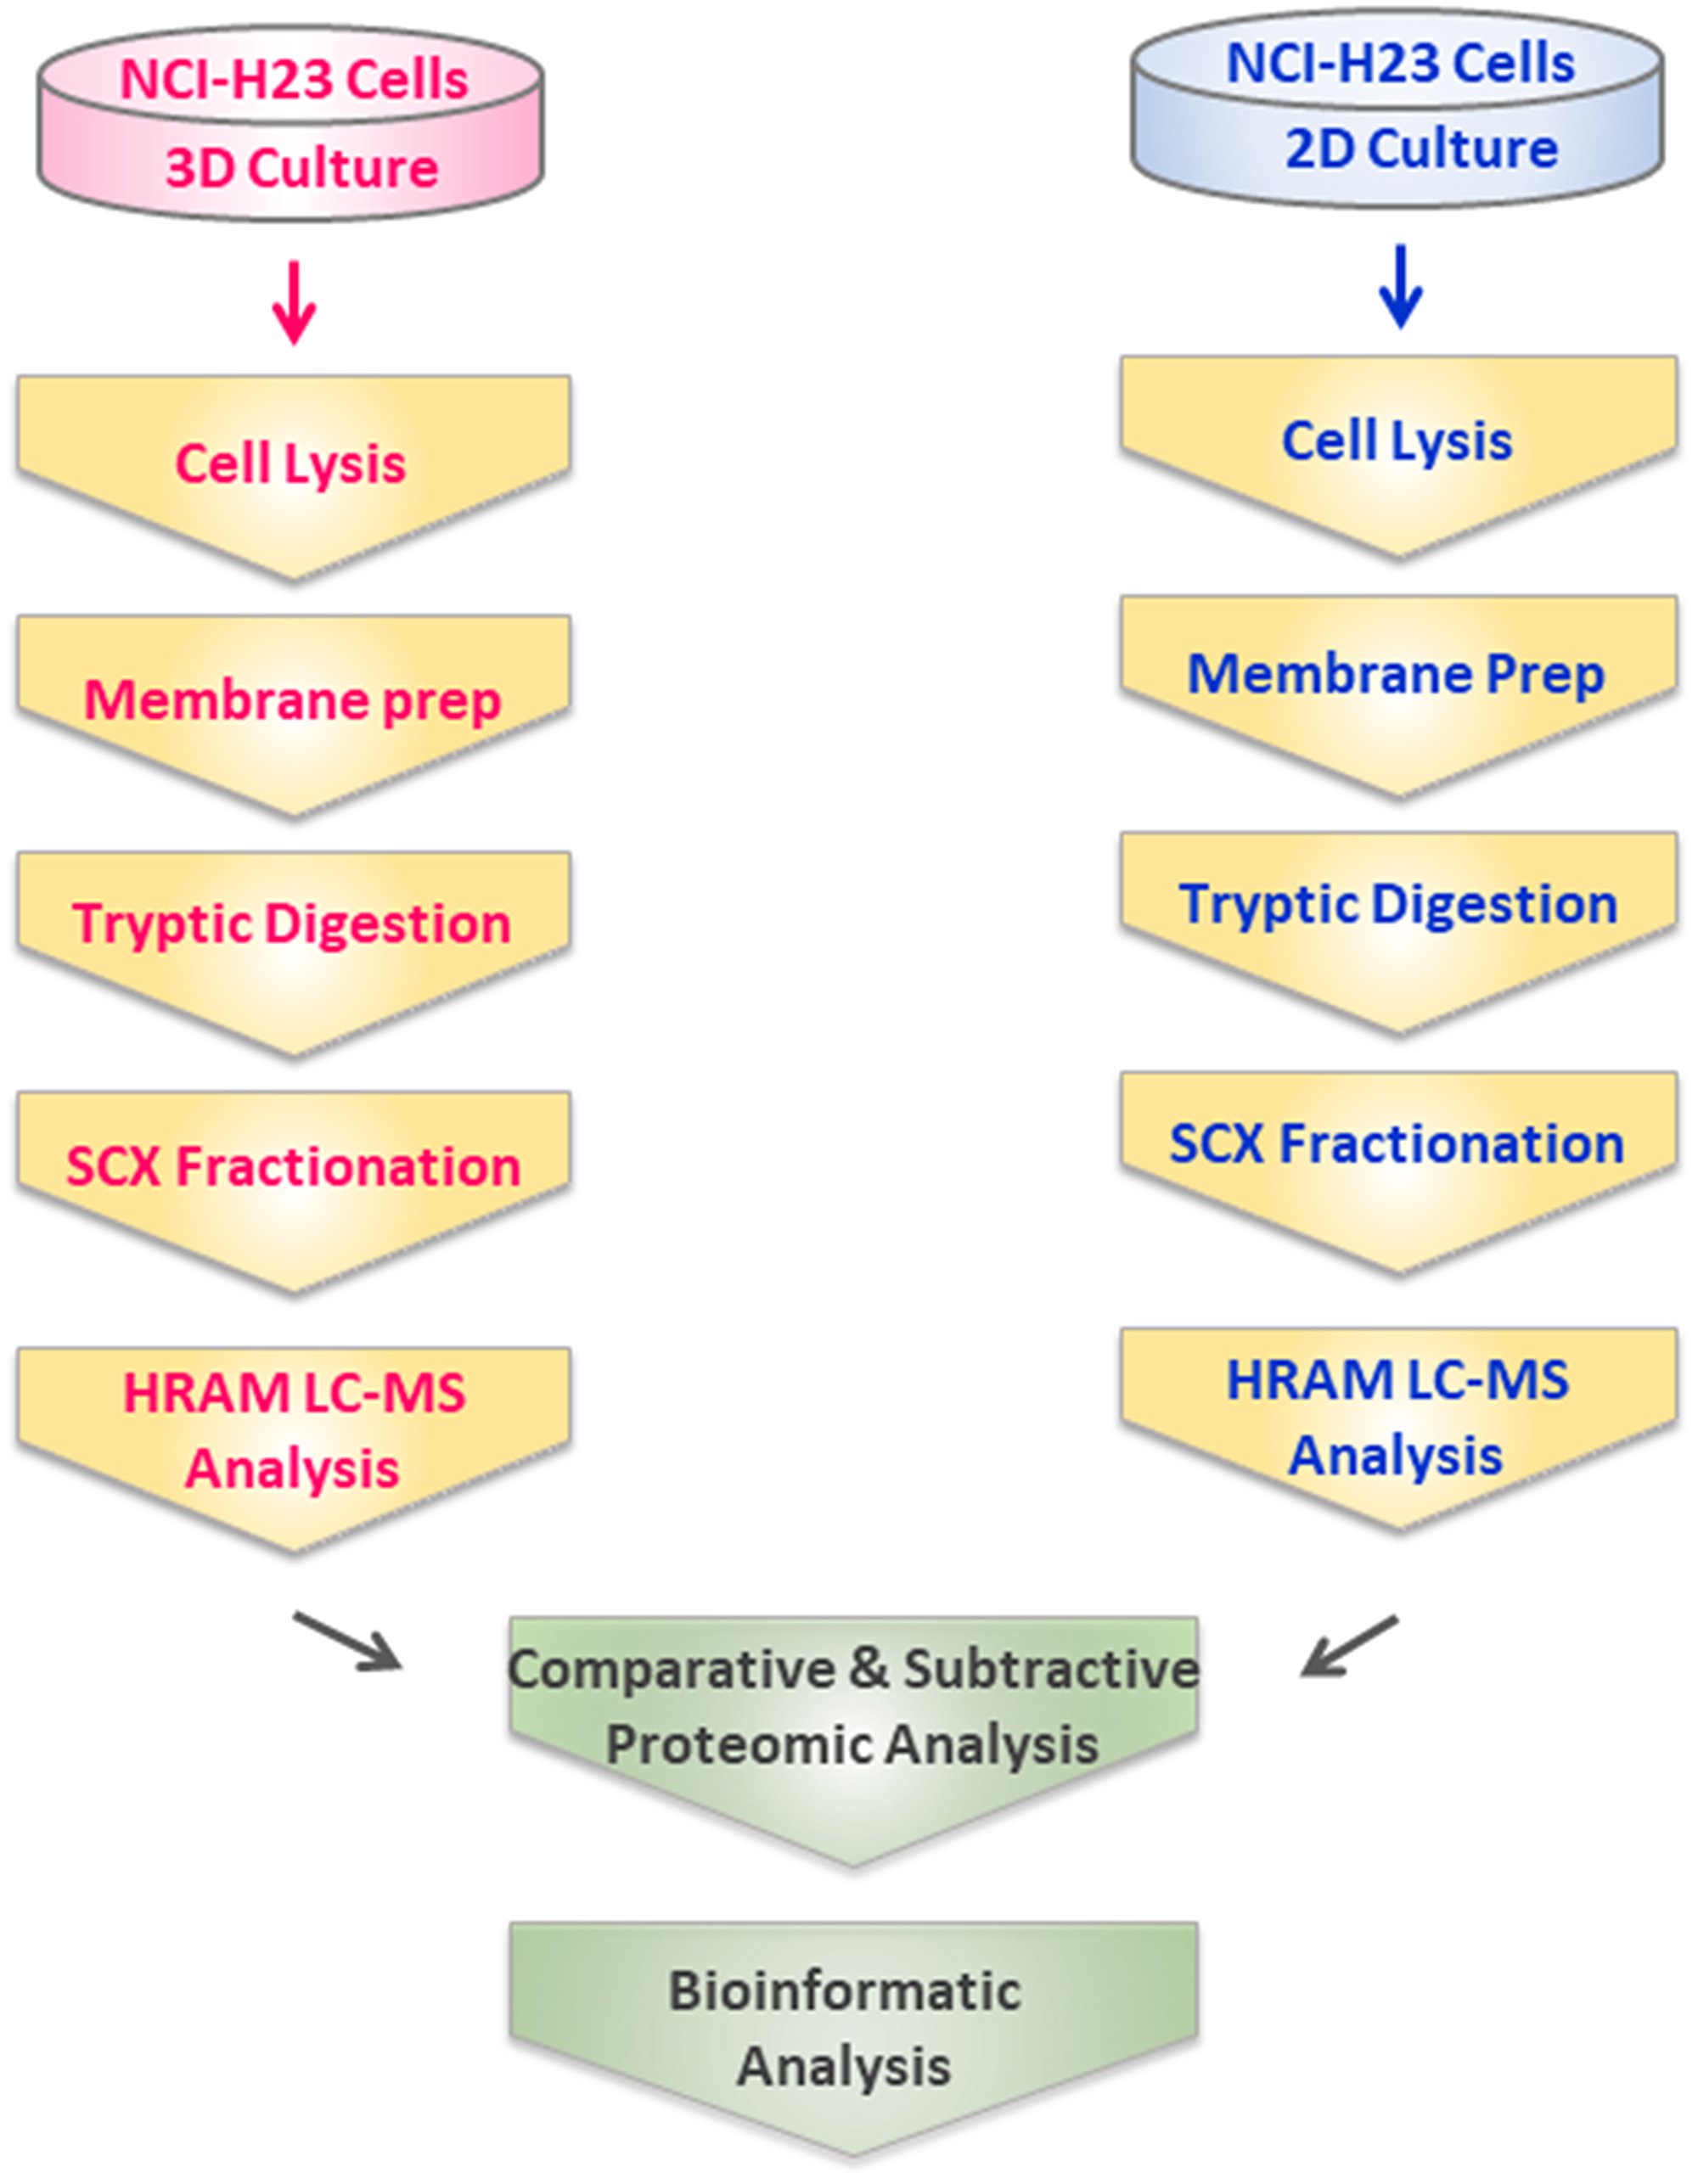 Experimental design and workflow for comparative profiling of 3D- and 2D-cultured NCI-H23 cells using comparative shotgun proteomics.